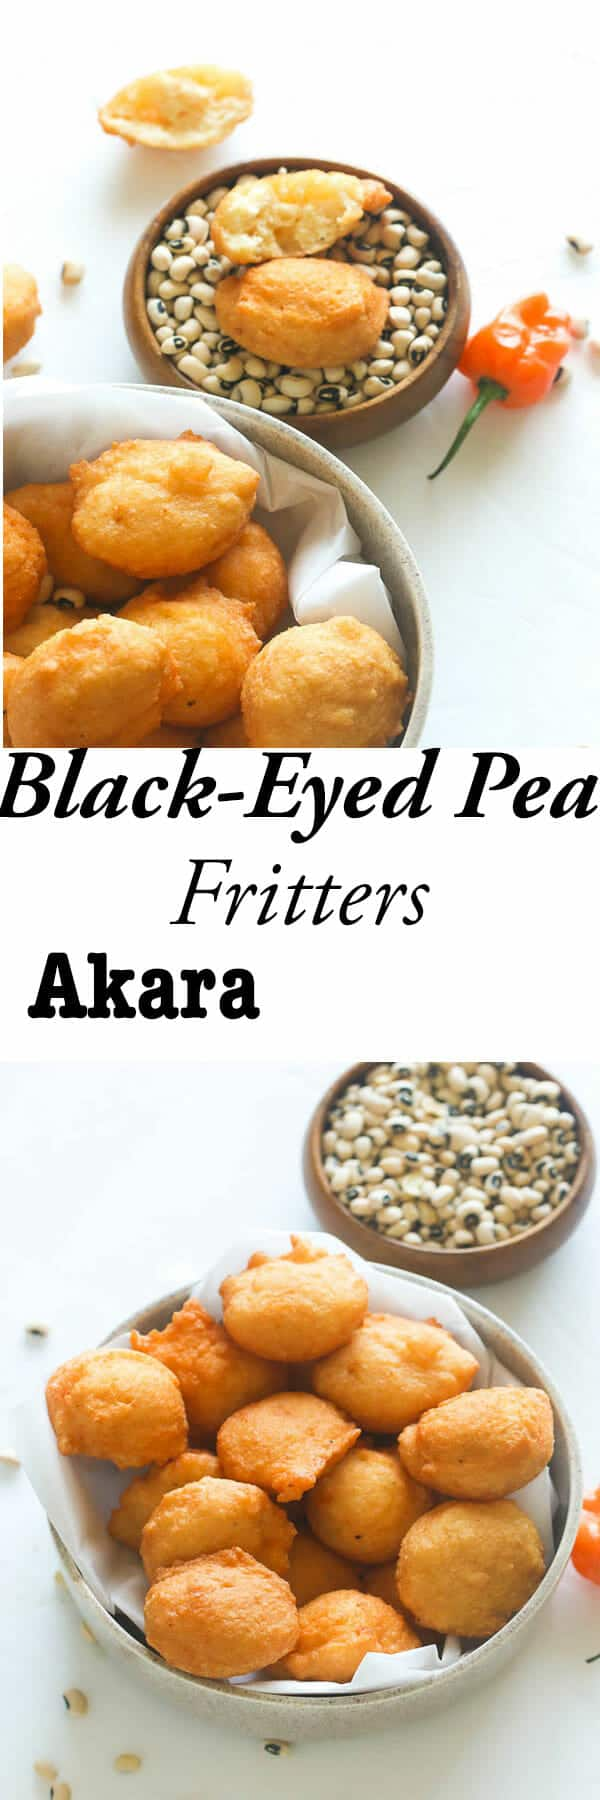 blacked-eyed-peas-fritters